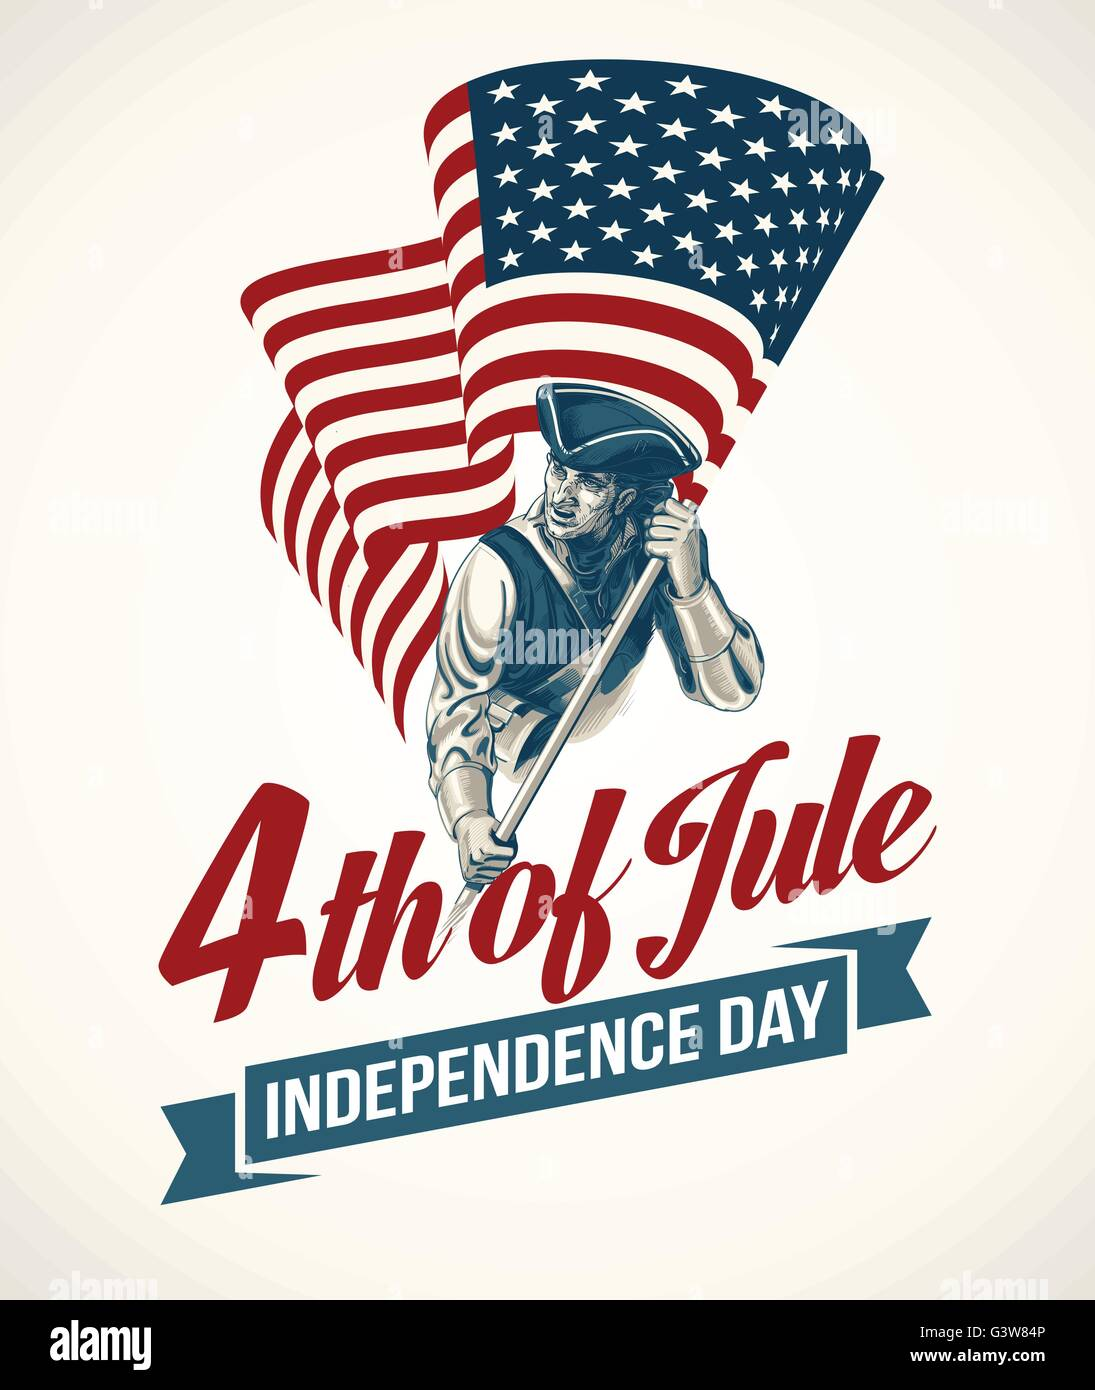 American independence day lettering design a template background american independence day lettering design a template background for greeting cards posters leaflets and brochure vector illustration m4hsunfo